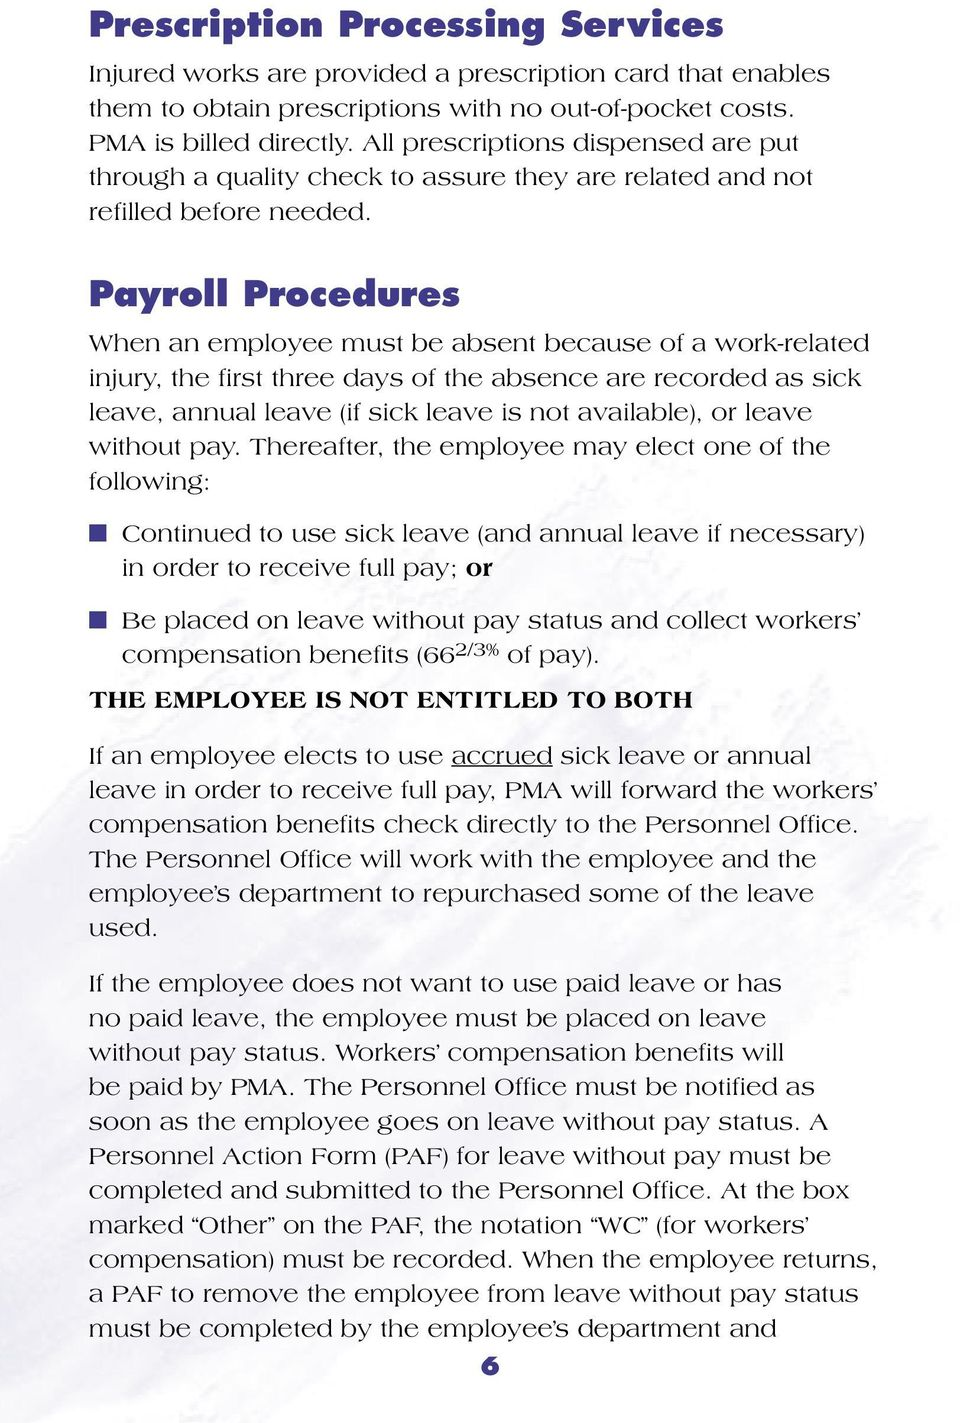 Payroll Procedures When an employee must be absent because of a work-related injury, the first three days of the absence are recorded as sick leave, annual leave (if sick leave is not available), or